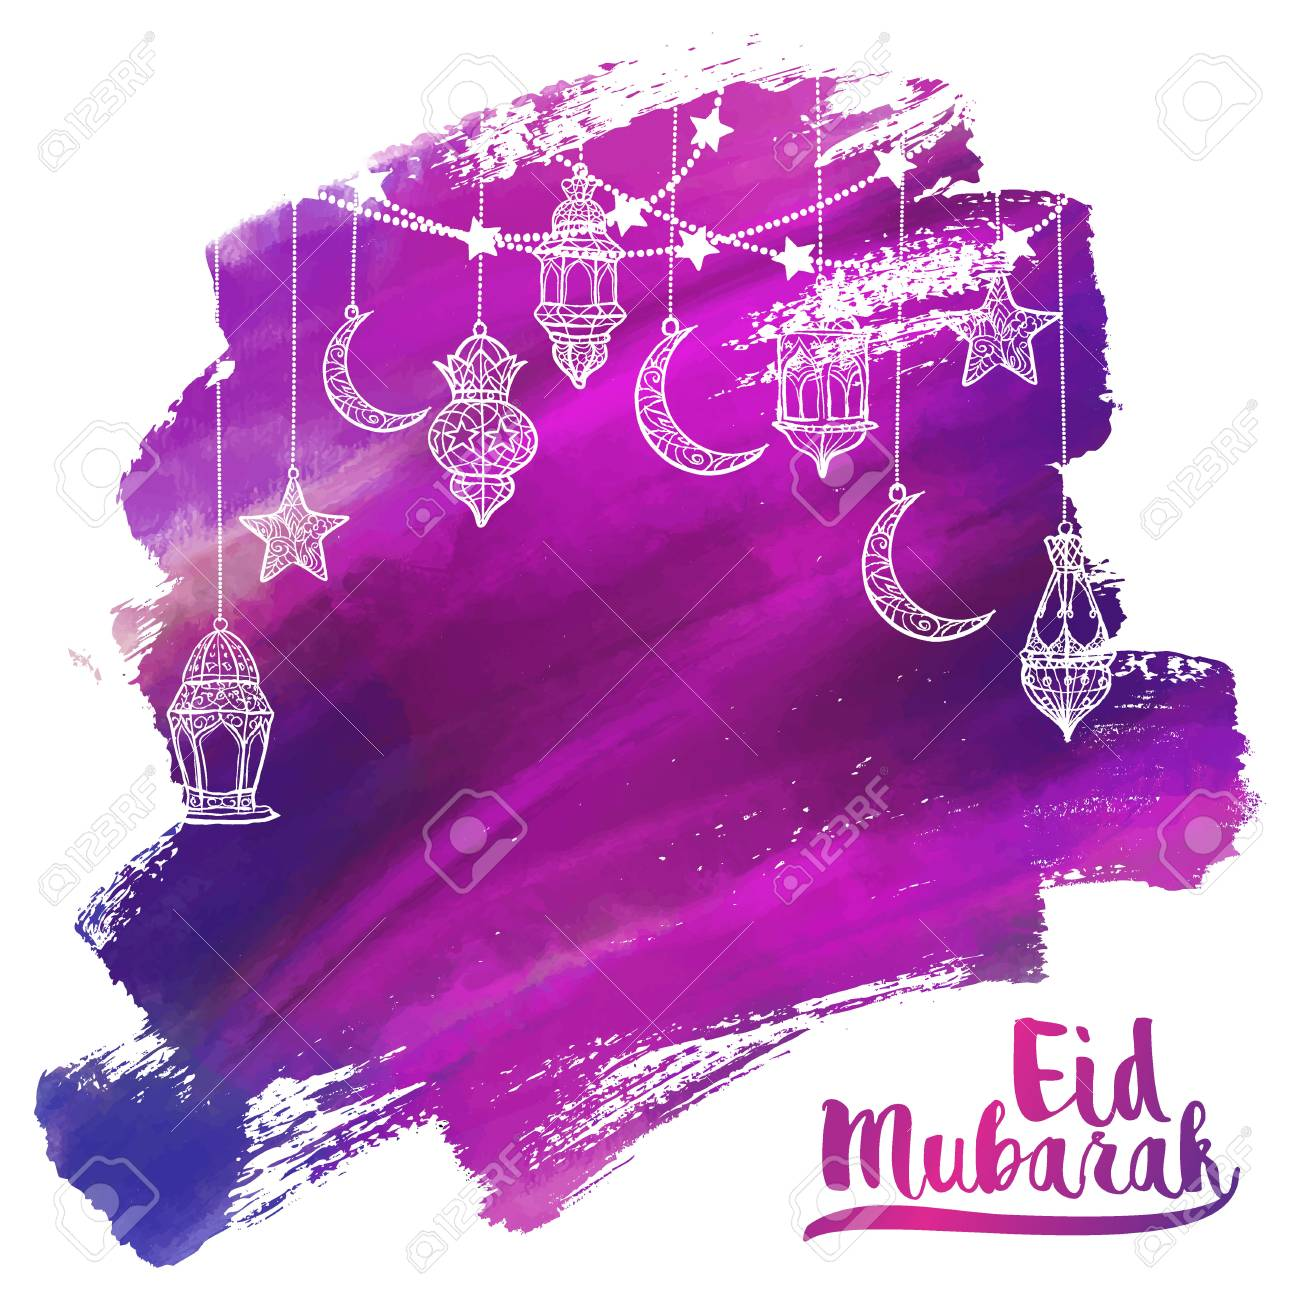 Eid mubarak greeting card islamic vector acrylic arabic lantern eid mubarak greeting card islamic vector acrylic arabic lantern lamp illustration for banner background stock m4hsunfo